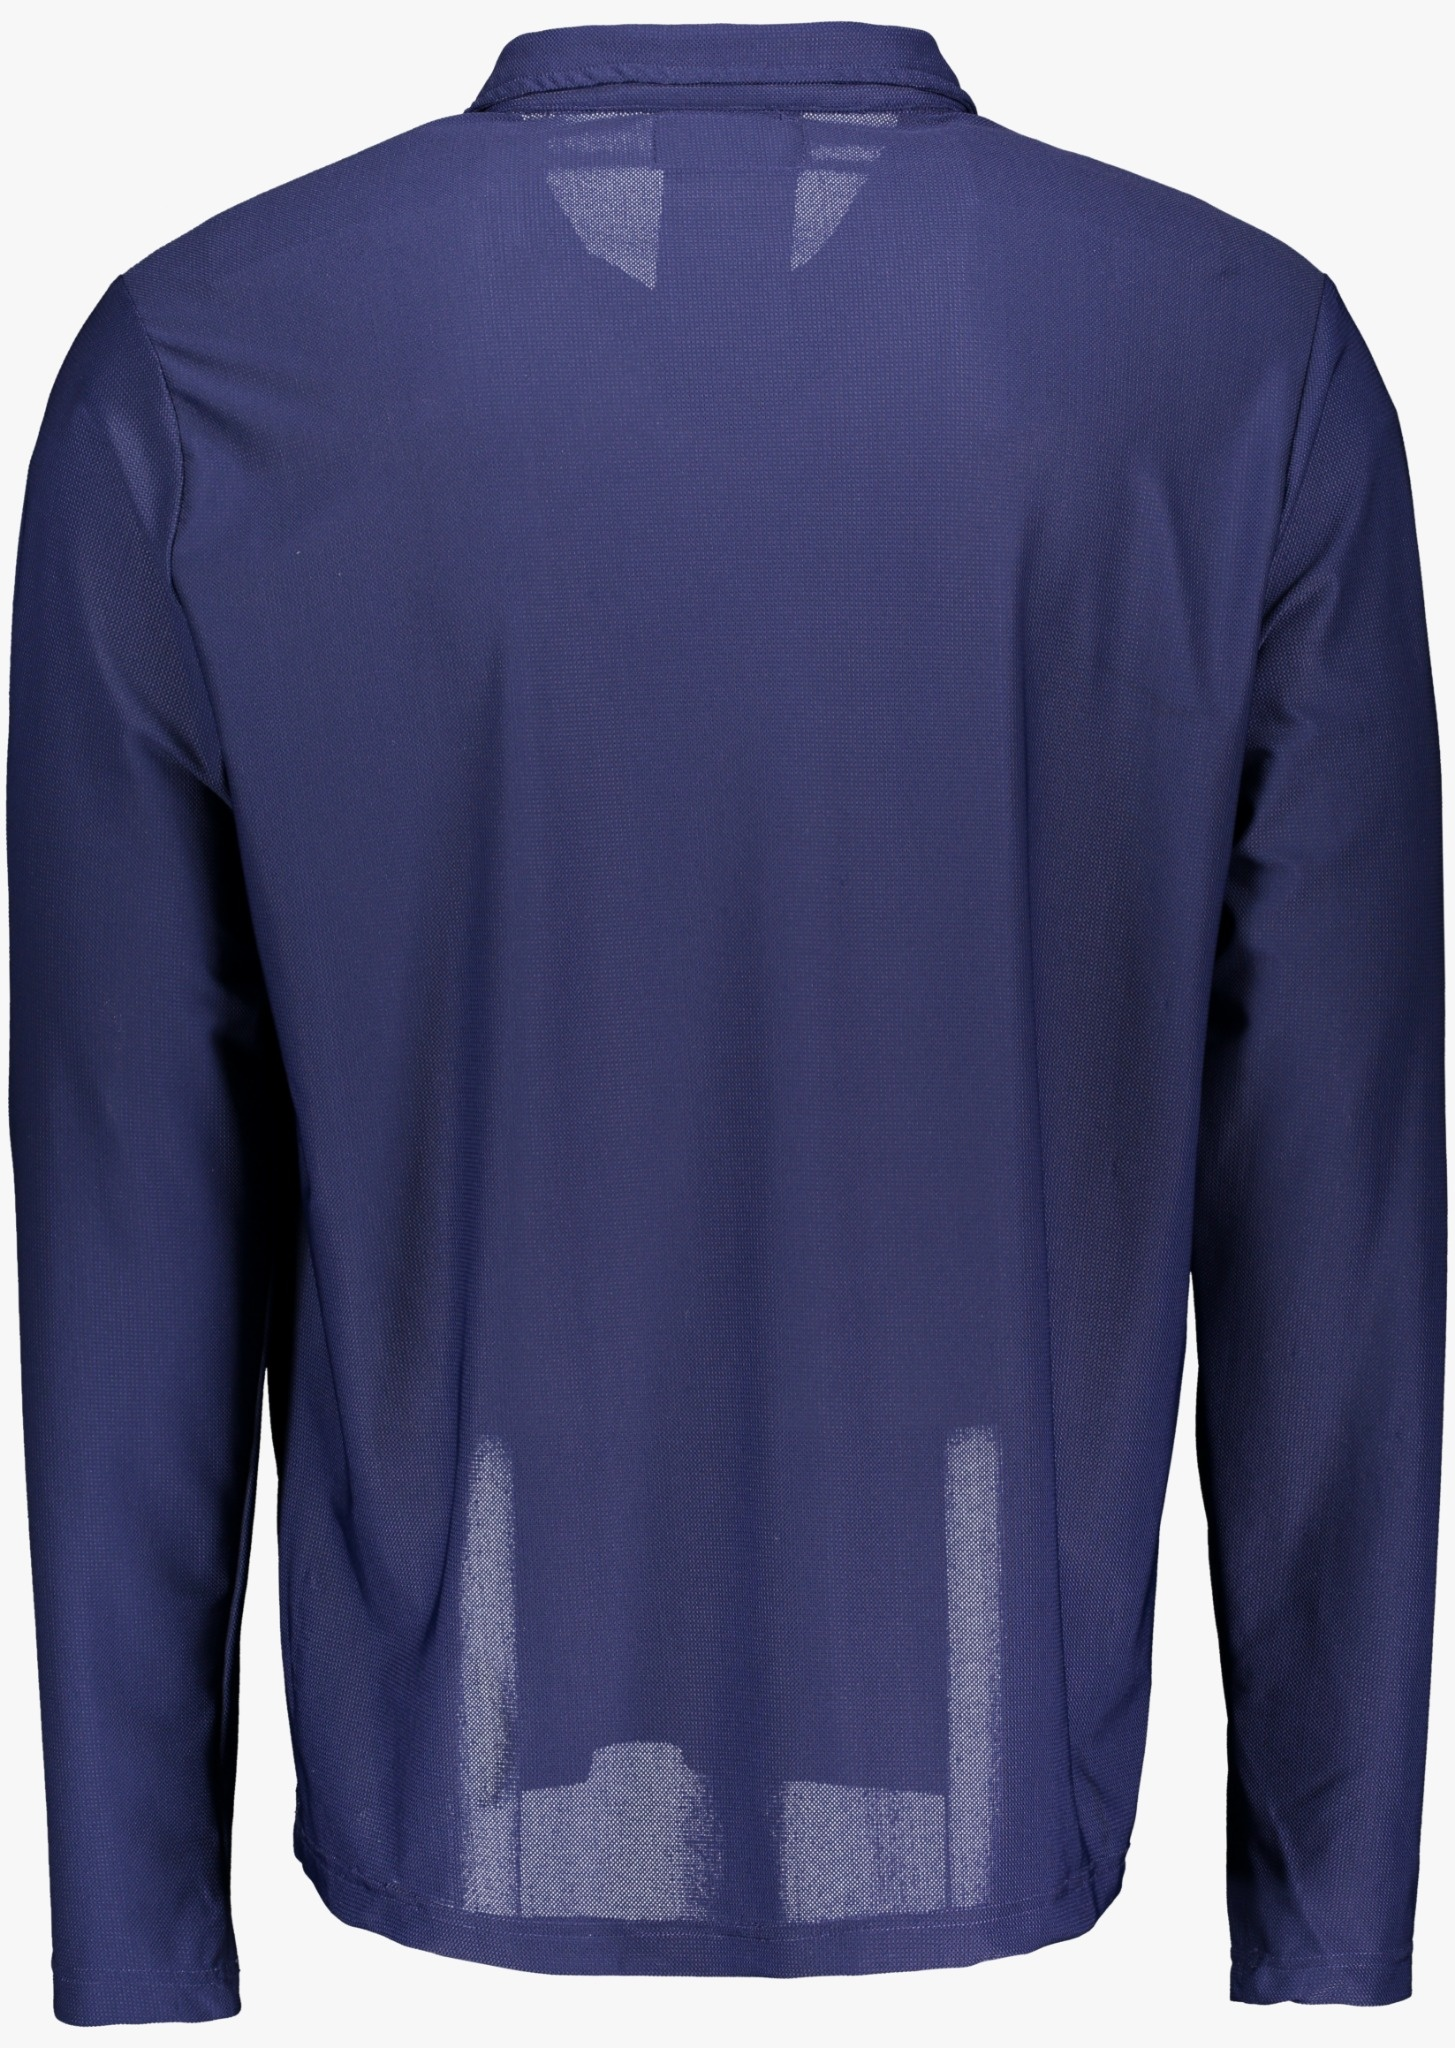 Men's UV Longsleeve  Collar-shirt blue (ZURICH EDITION)-3